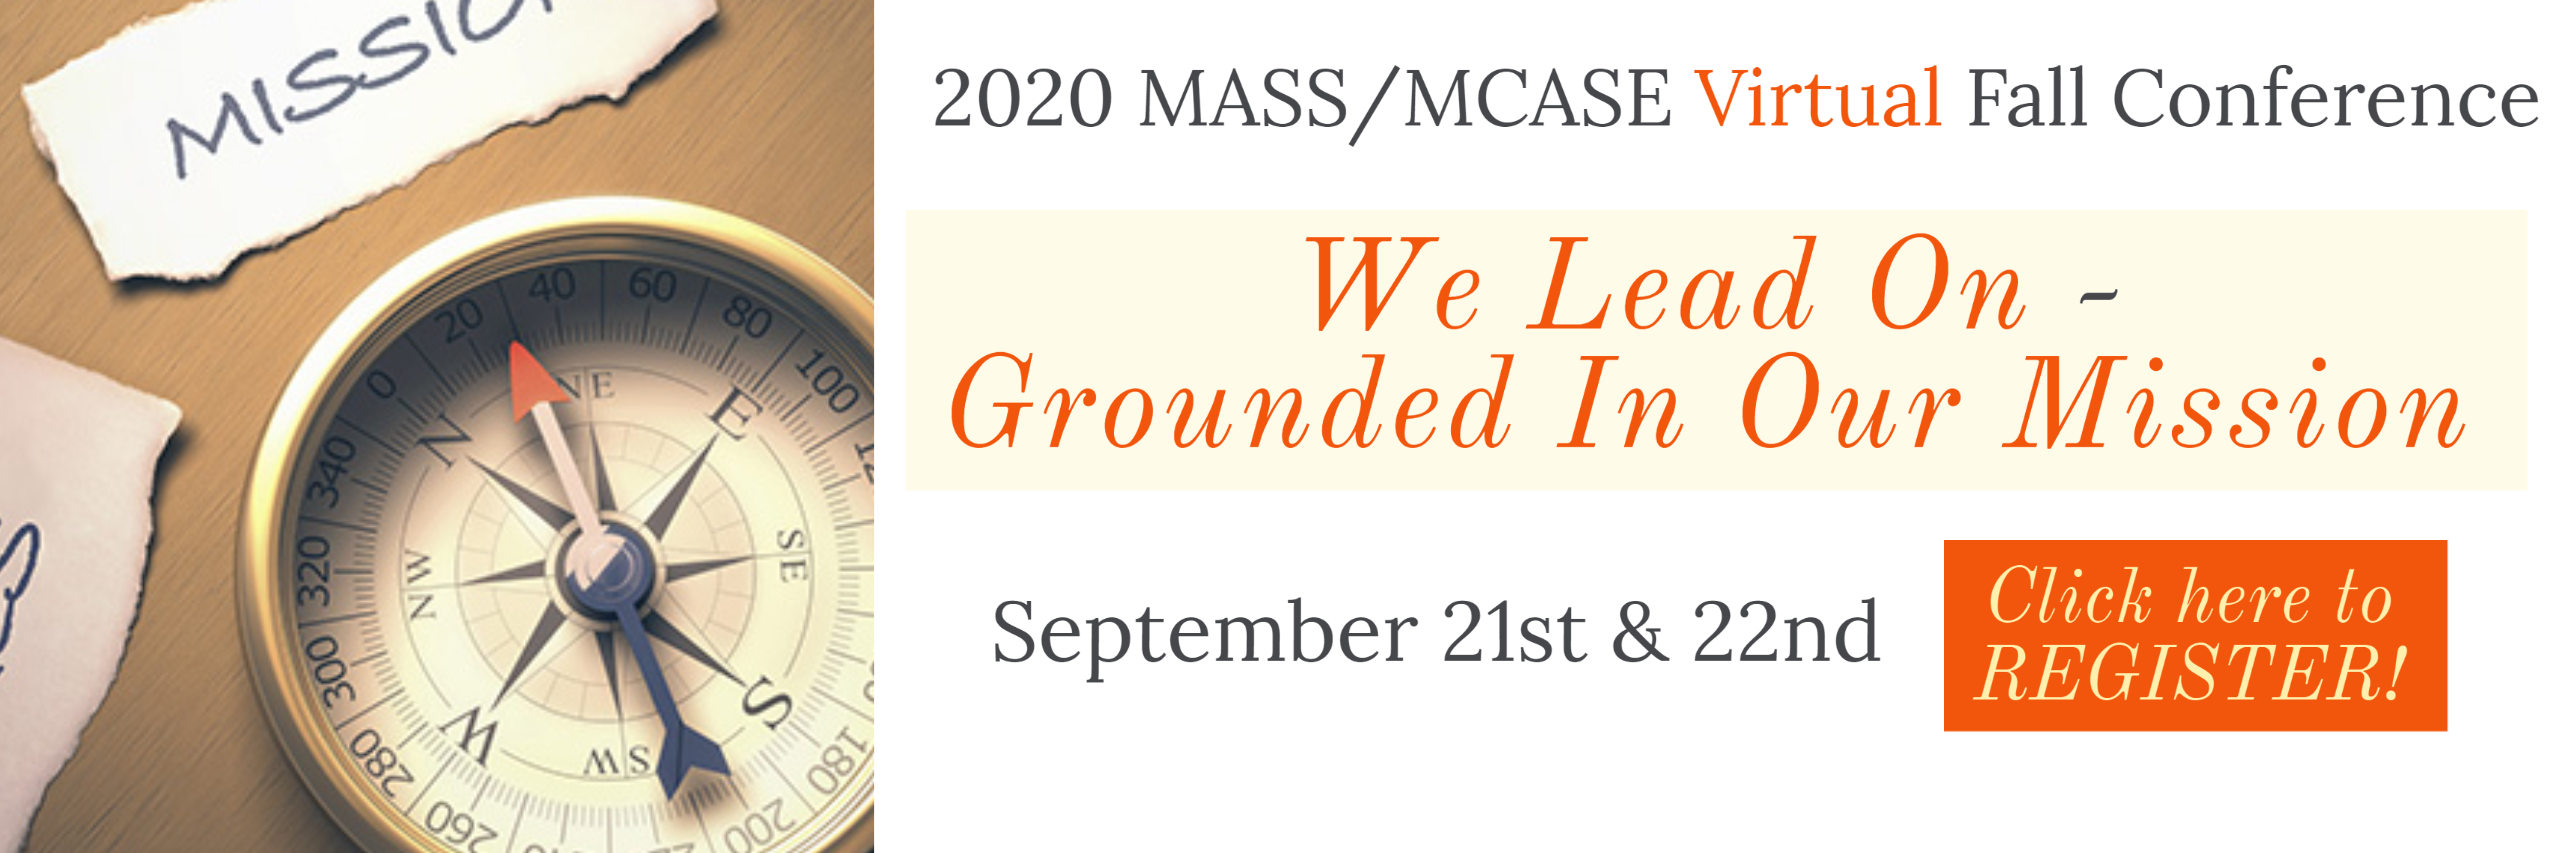 MASS_MCASE_Virtual_Fall_Conference_2020_Banner.png - 1.33 Mb